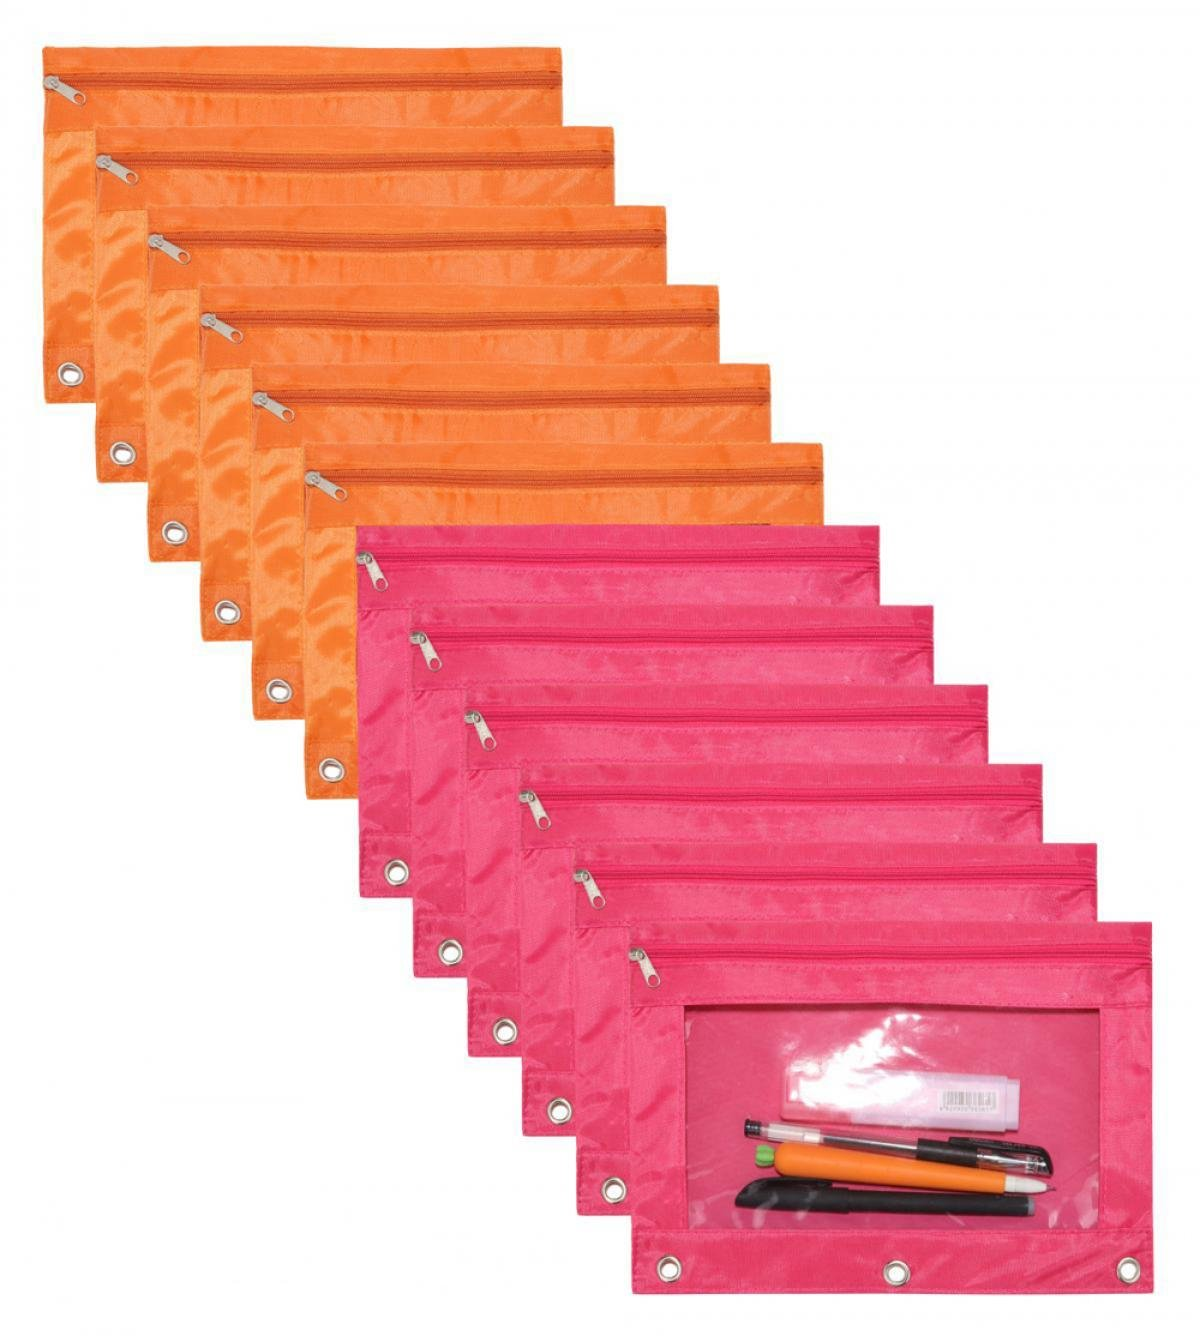 WODISON 12 Pcs Office School Class Zippered 3 Ring Binder Pencil Pouch Case with Clear Window